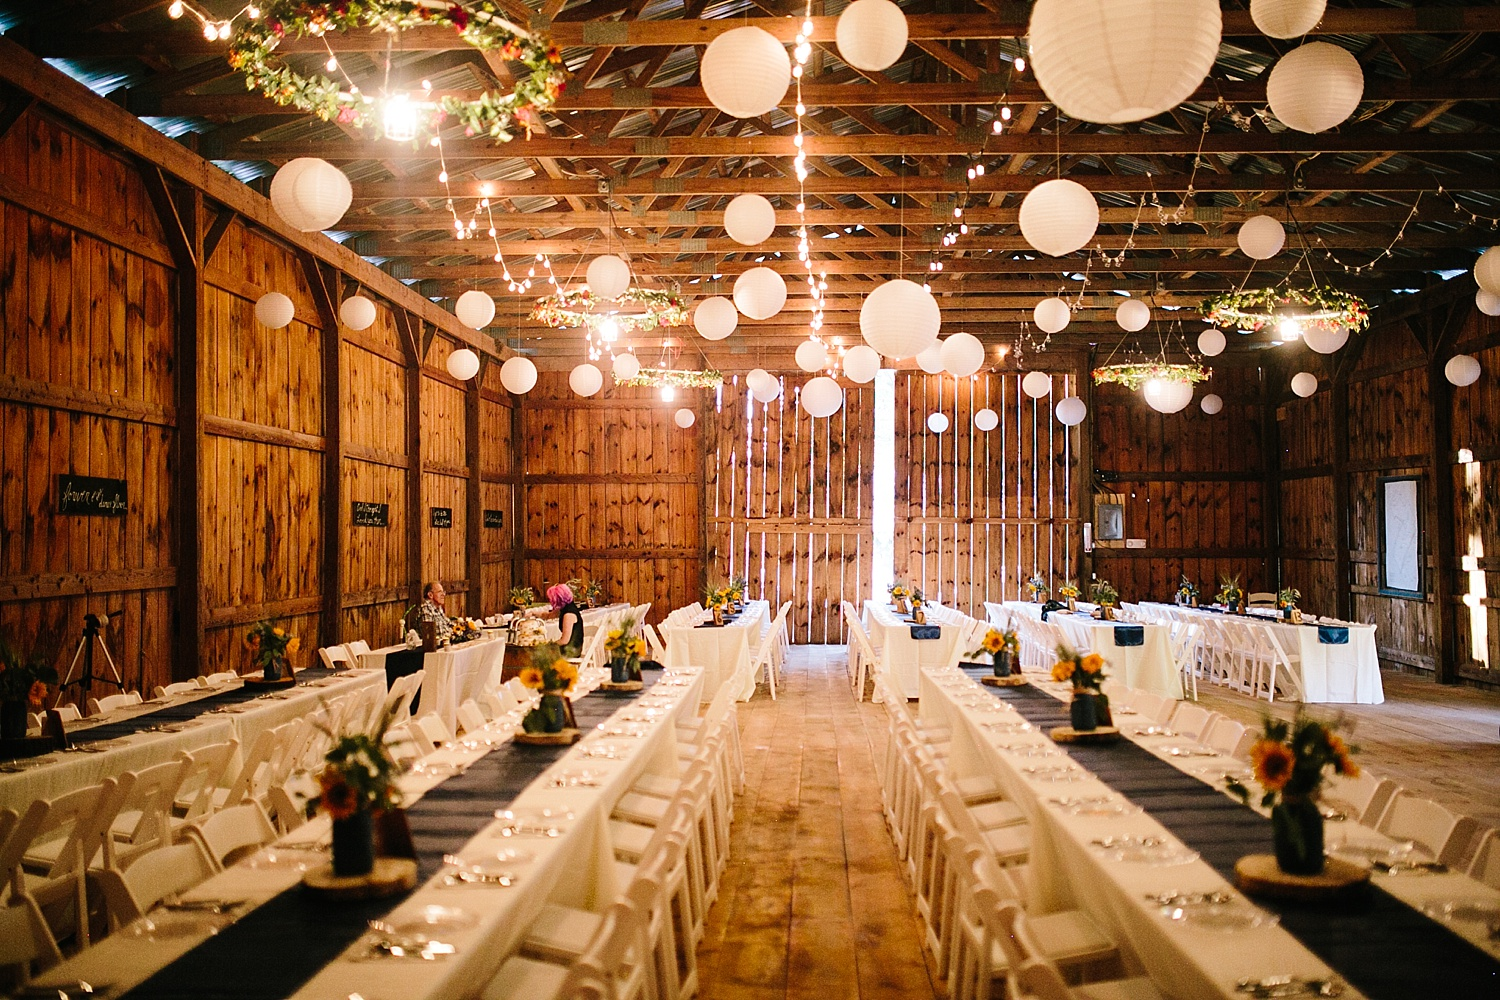 jennyryan_newbeginnings_farmstead_upstatenewyork_wedding_image115.jpg